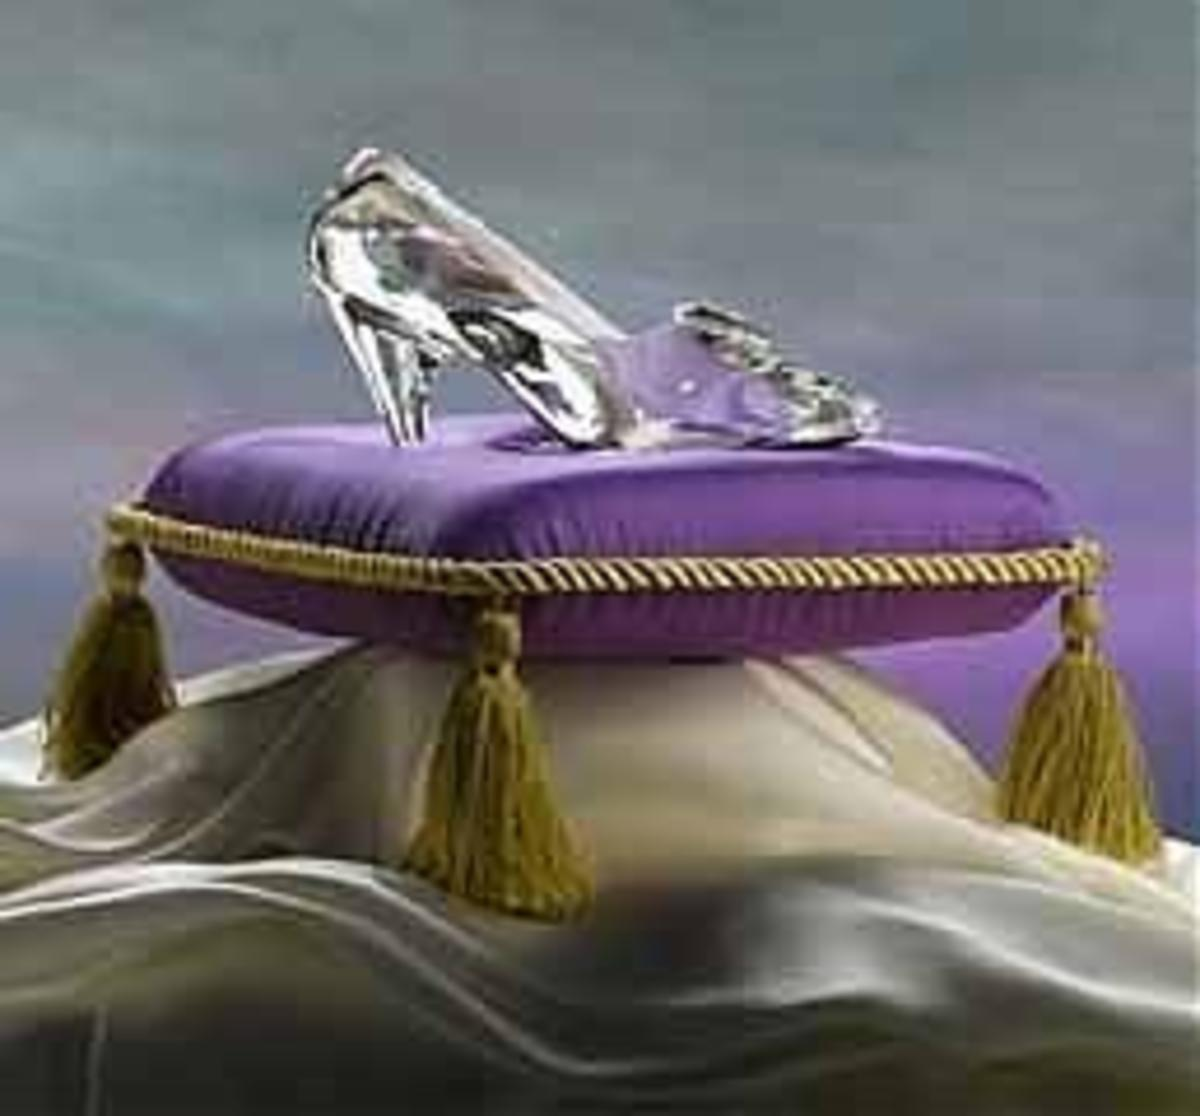 ~The Glass Slippers~